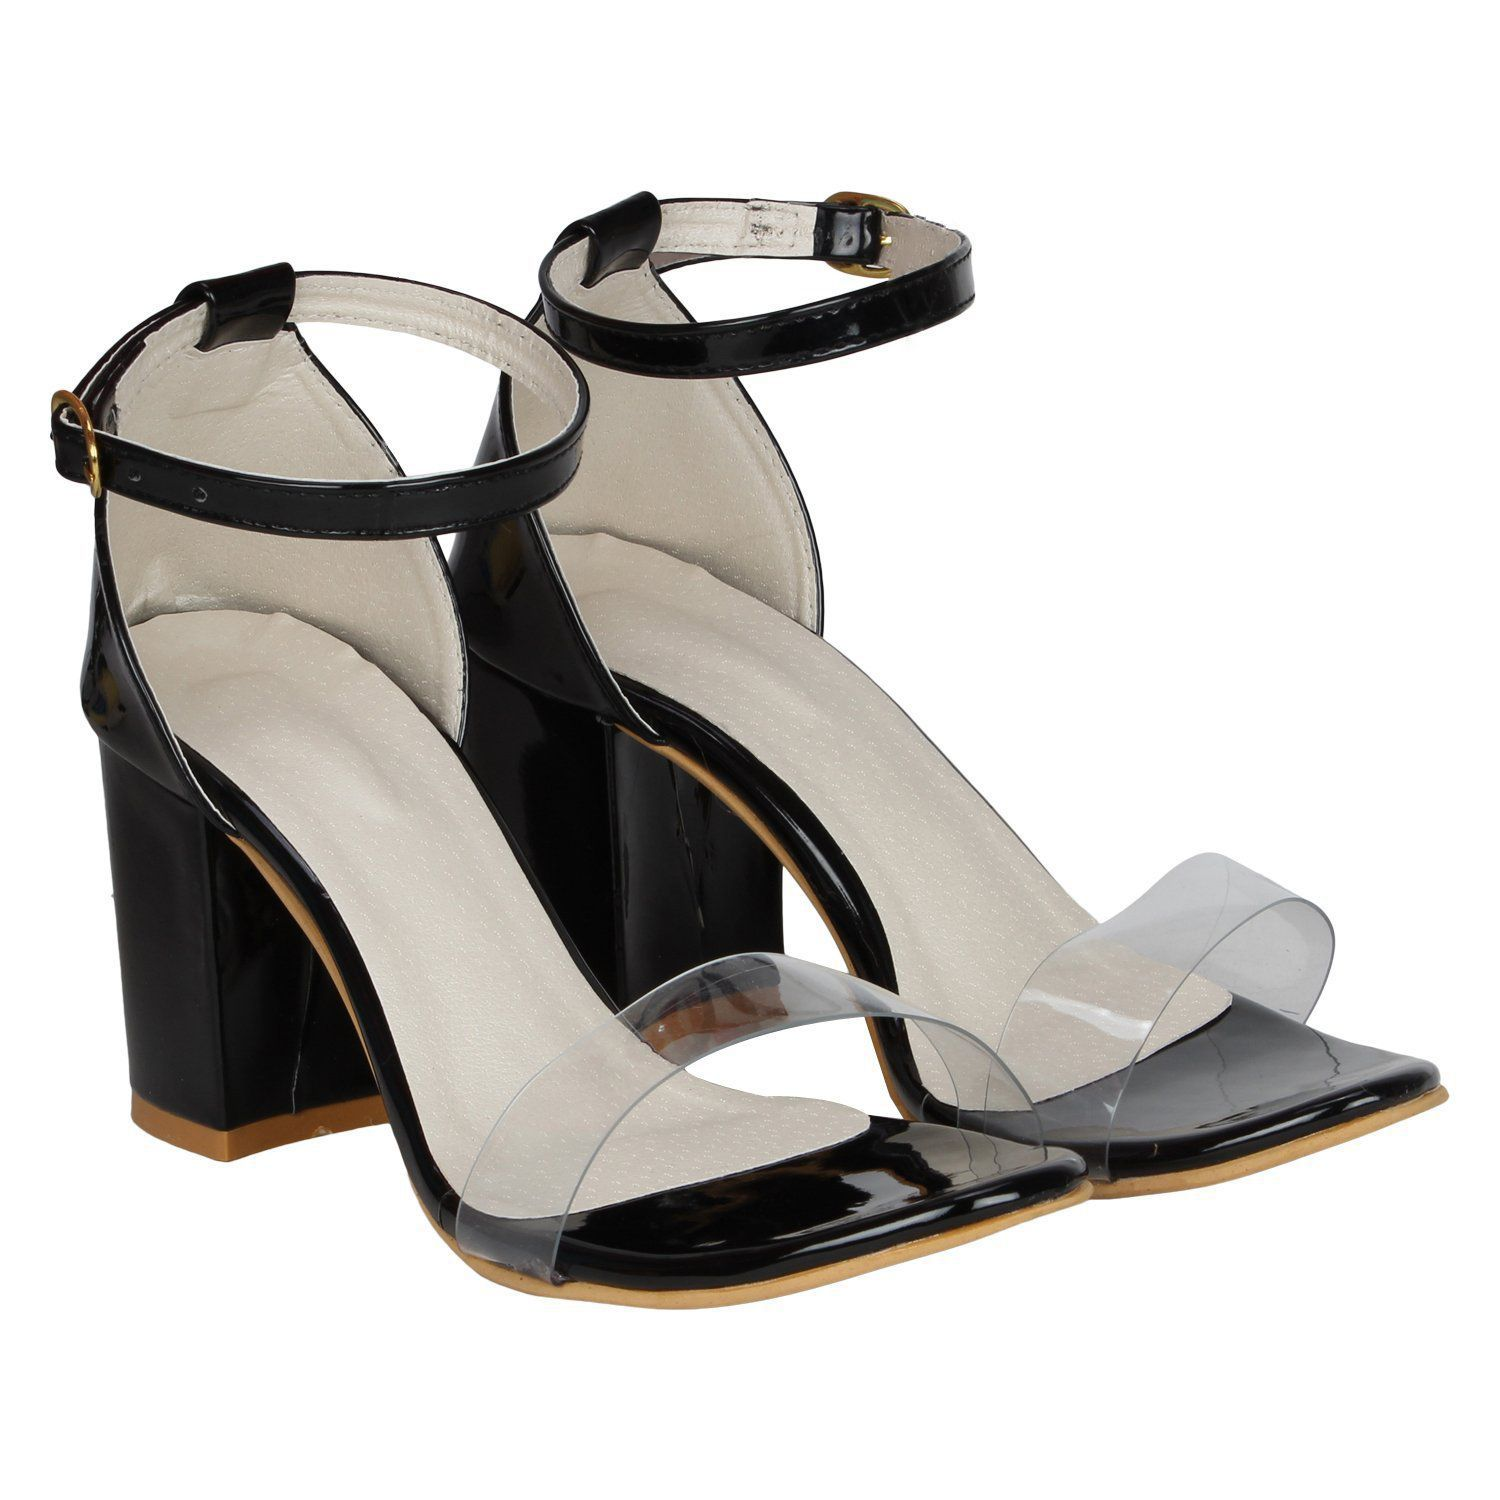 SHOFIEE Black Block Heels best seller new release dates cheap online discount order free shipping wholesale price hy3l4